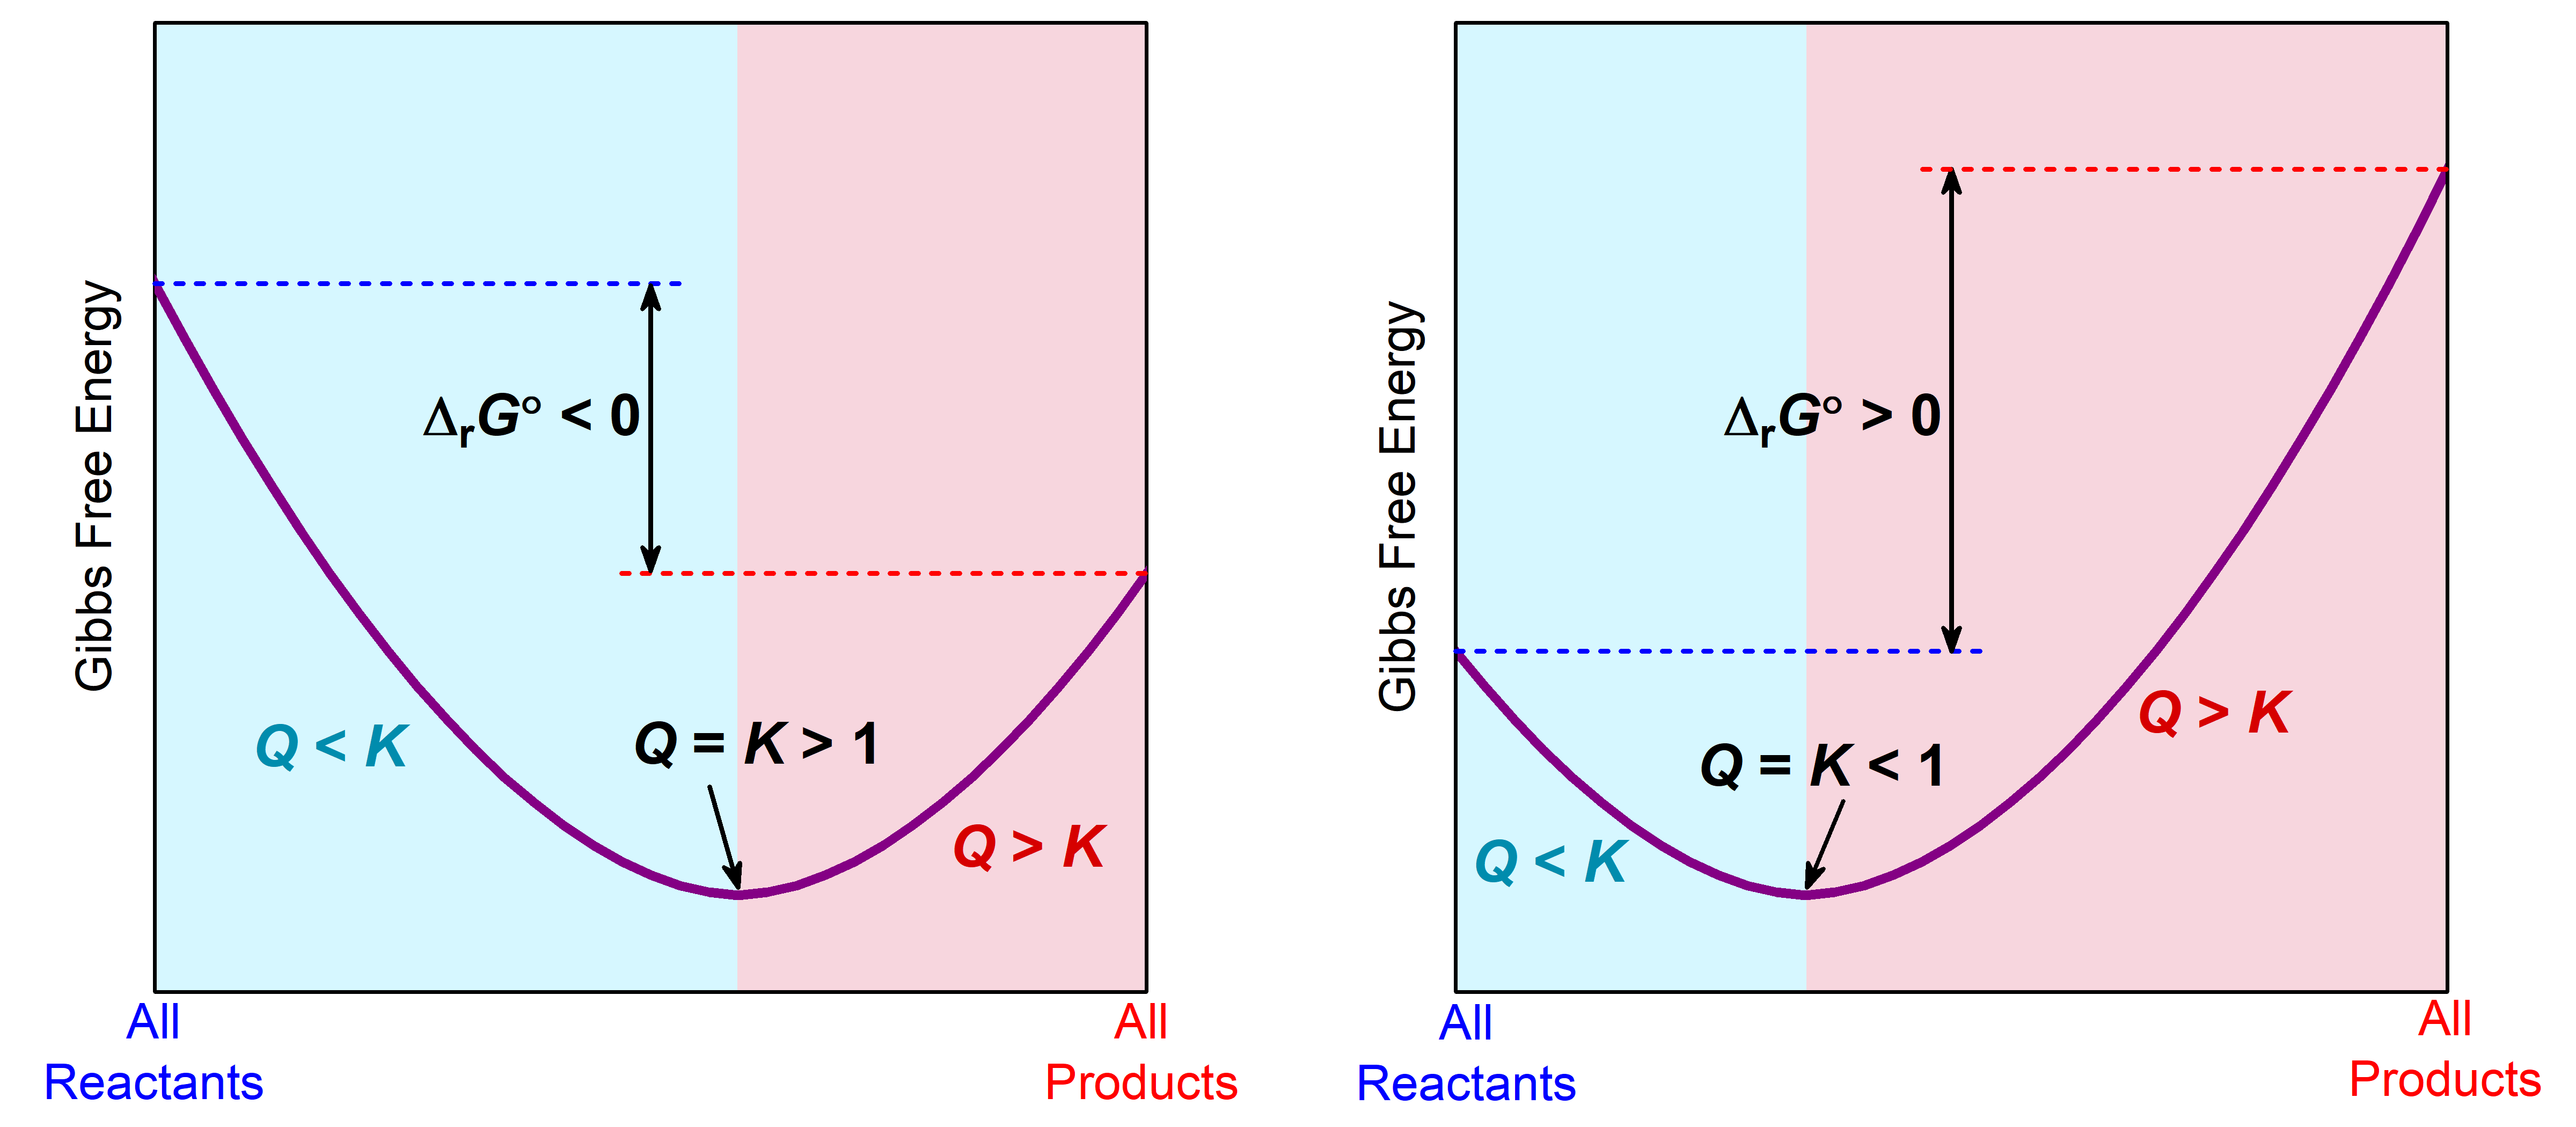 "Two graphs are shown where the y-axis is labeled ""Gibbs free energy"" while the x-axis is labeled ""All Reactants"" on the left and ""All Products"" on the right. In left graph, a line begins at the upper left side and goes steadily down to a point about two thirds of the way on the x-axis, then rises again to a point that is slightly lower than halfway up the y-axis. The distance between the beginning and ending points of the graph is labeled as, ""delta G naught less than 0,"" while the lowest point on the graph is labeled, ""Q equals K greater than 1."" In right graph, a line begins at the lower left side and goes steadily down to a point about one third of the way on the x-axis, then rises again to a point that is near the top of the y-axis. The distance between the beginning and ending points of the graph is labeled as, ""delta G naught greater than 0,"" while the lowest point on the graph is labeled, ""Q equals K less than 1."""